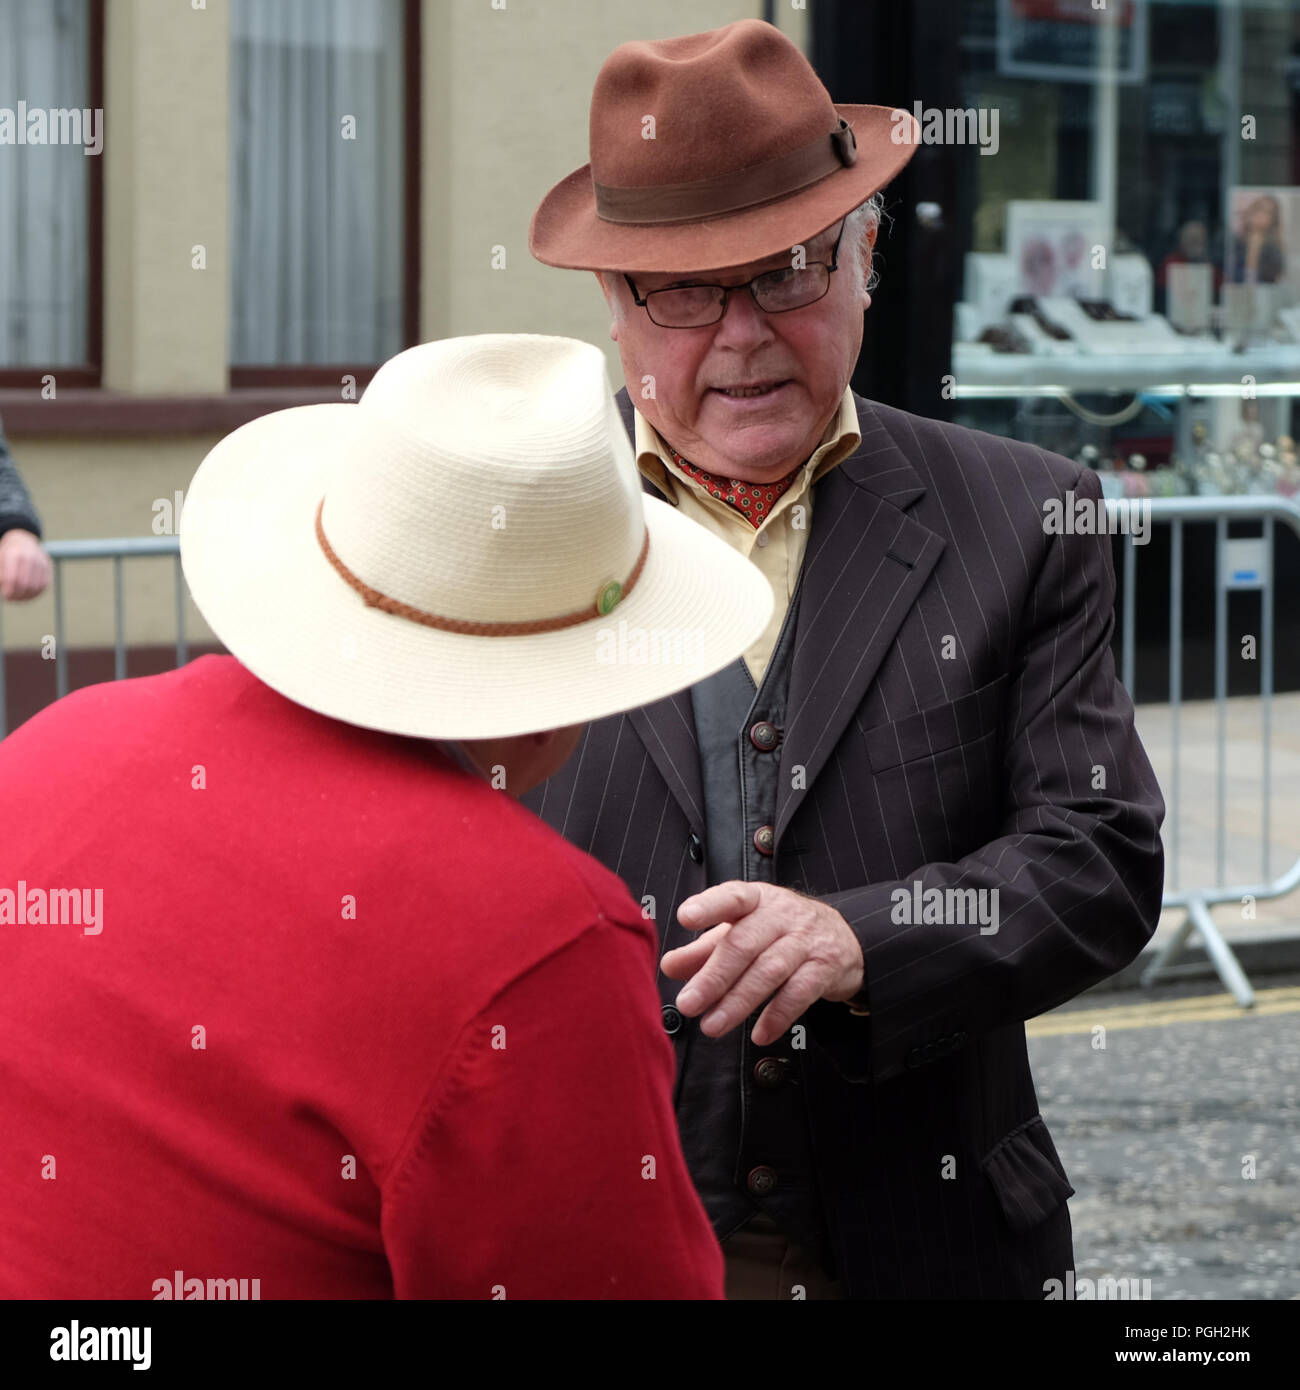 Two men at the May Fair, Ballyclare, County Antrim, Northern Ireland. - Stock Image